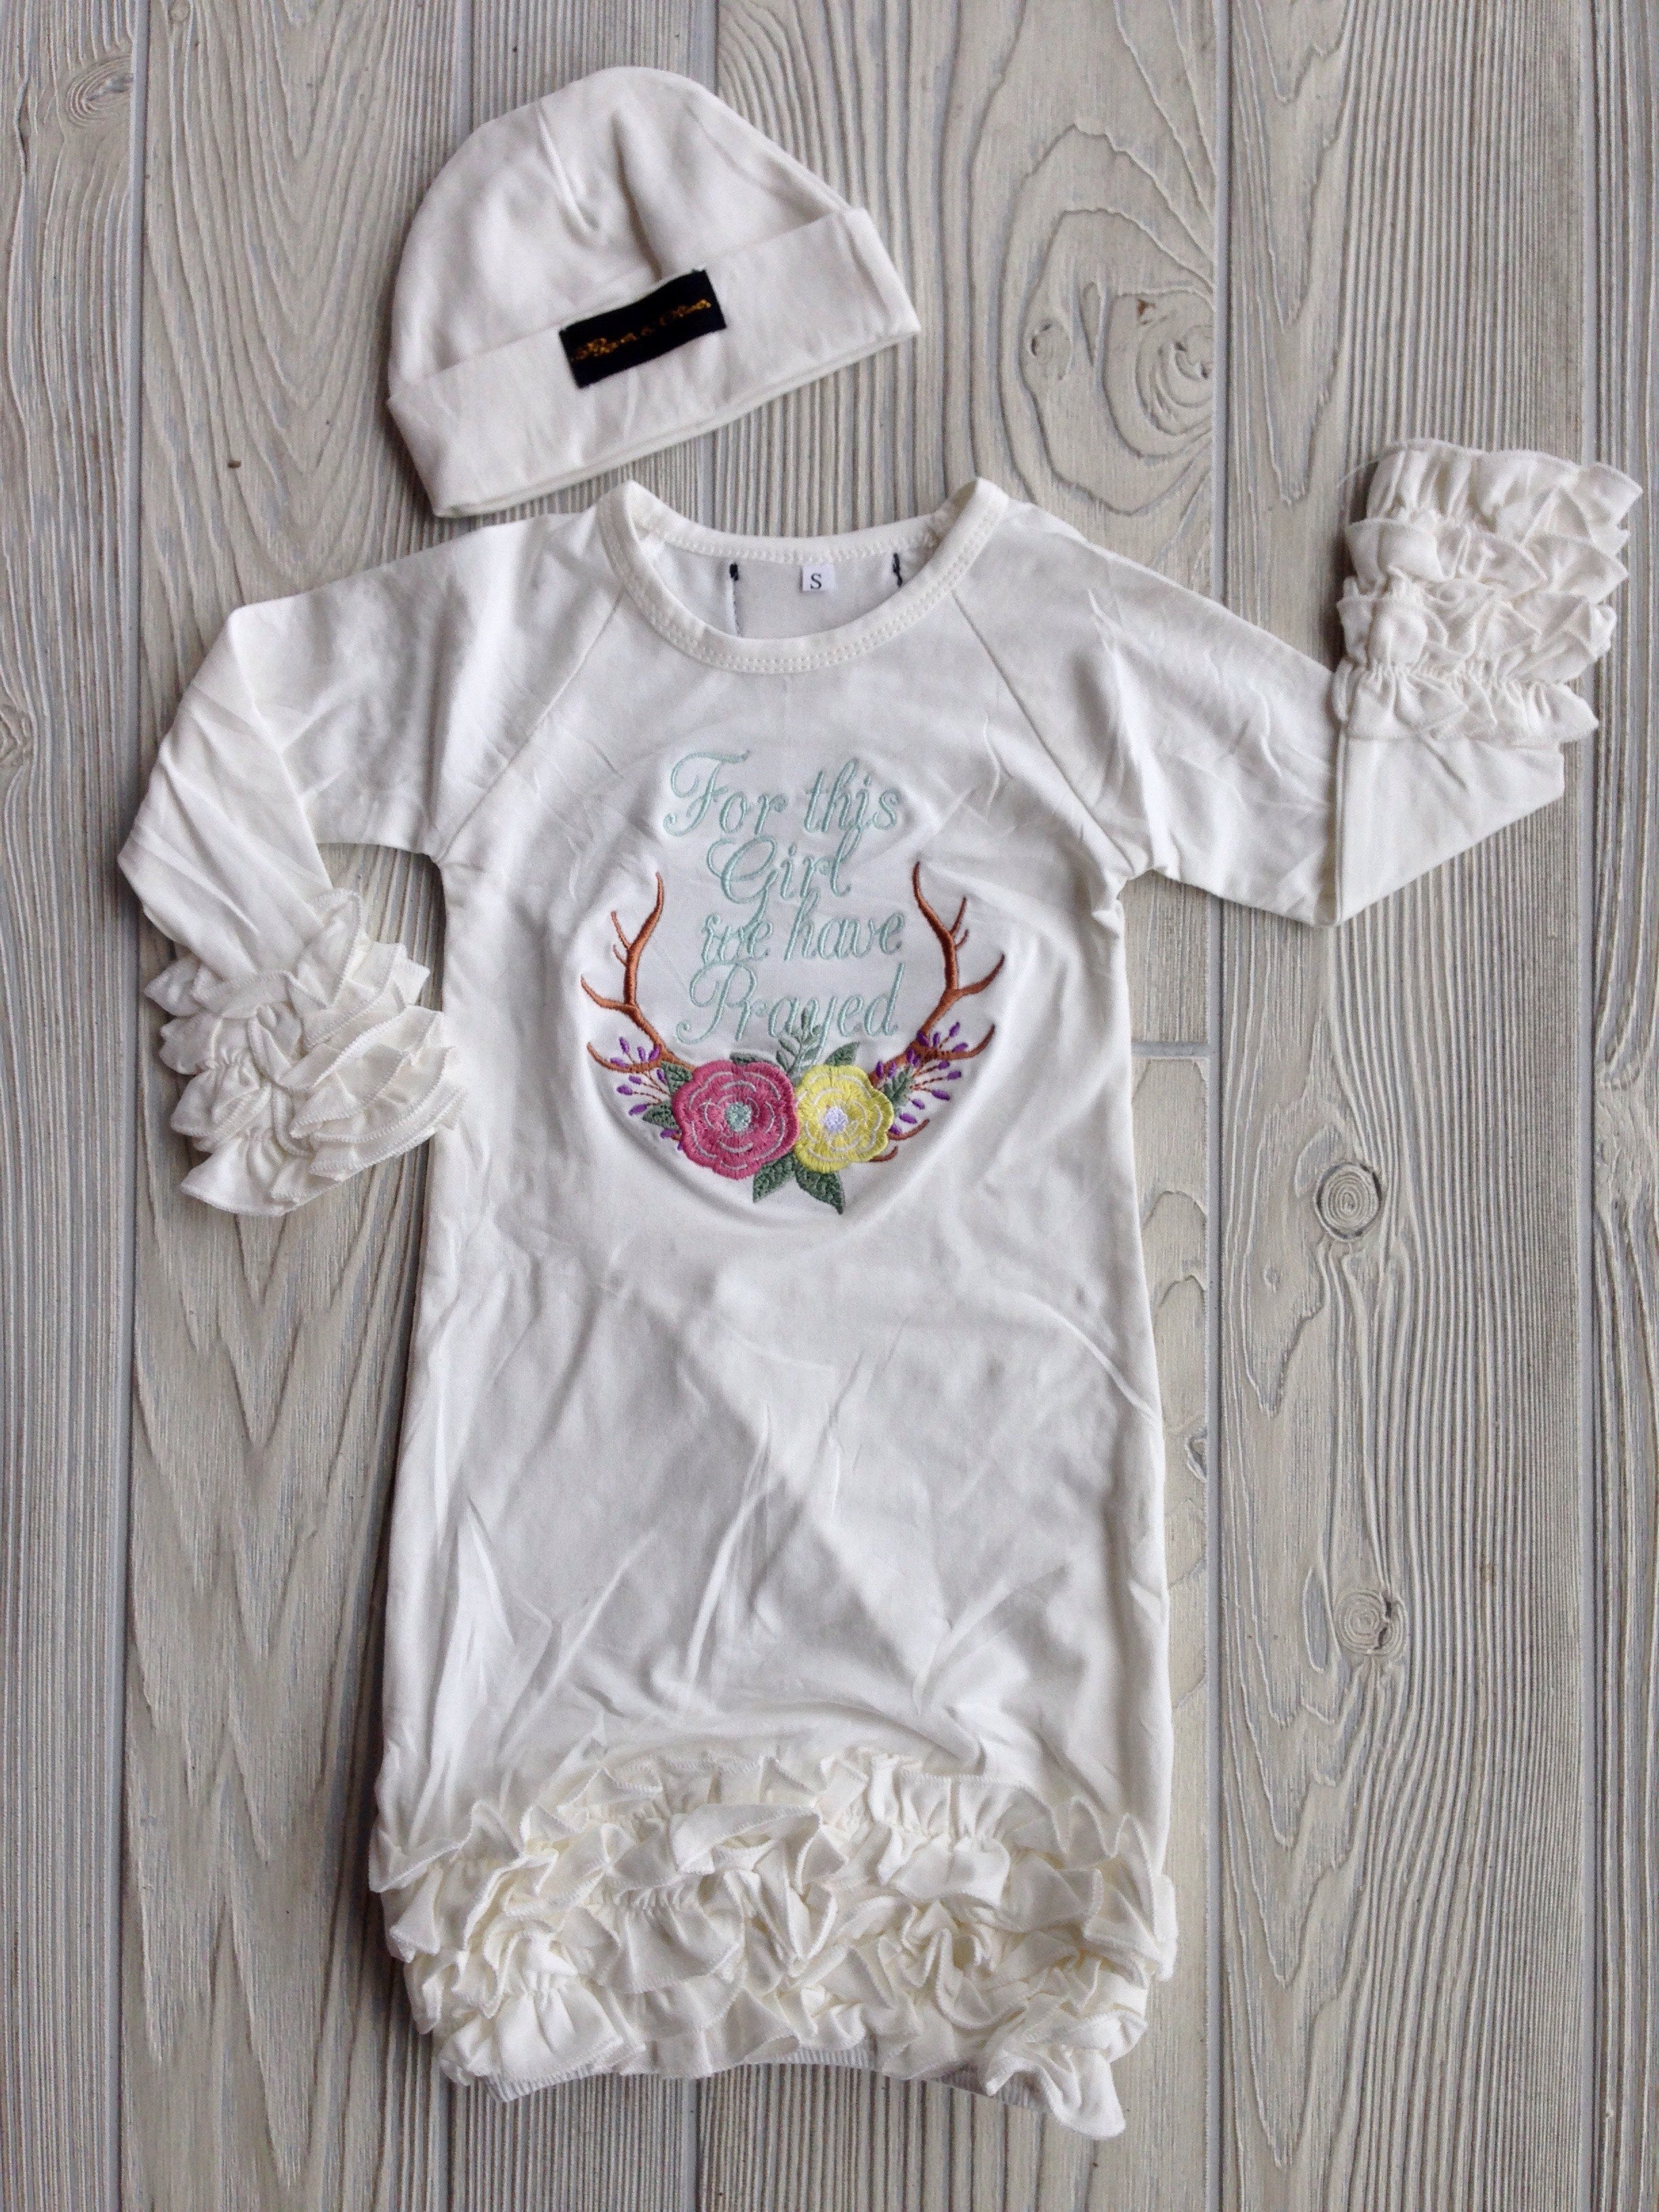 For this little Girl We Have Prayed - Newborn Gown – Darling Custom ...